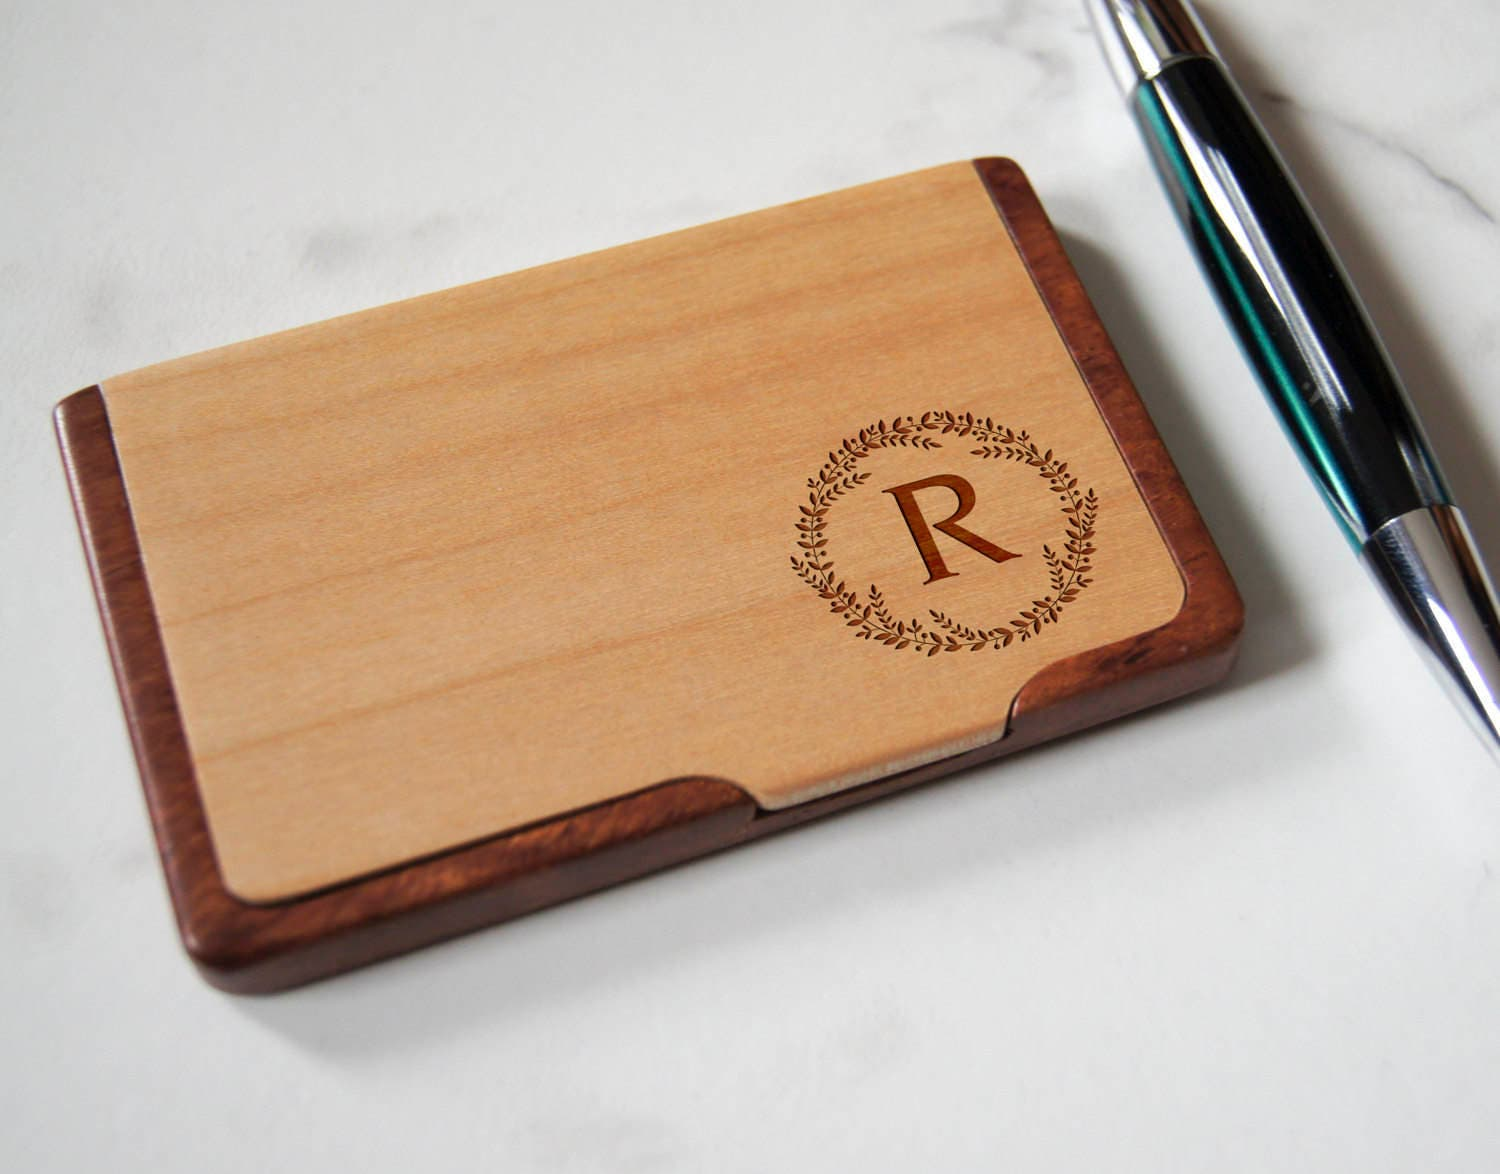 Customized business cards holder personalized wooden business cards customized business cards holder personalized wooden business cards holder engraved business cards cases colourmoves